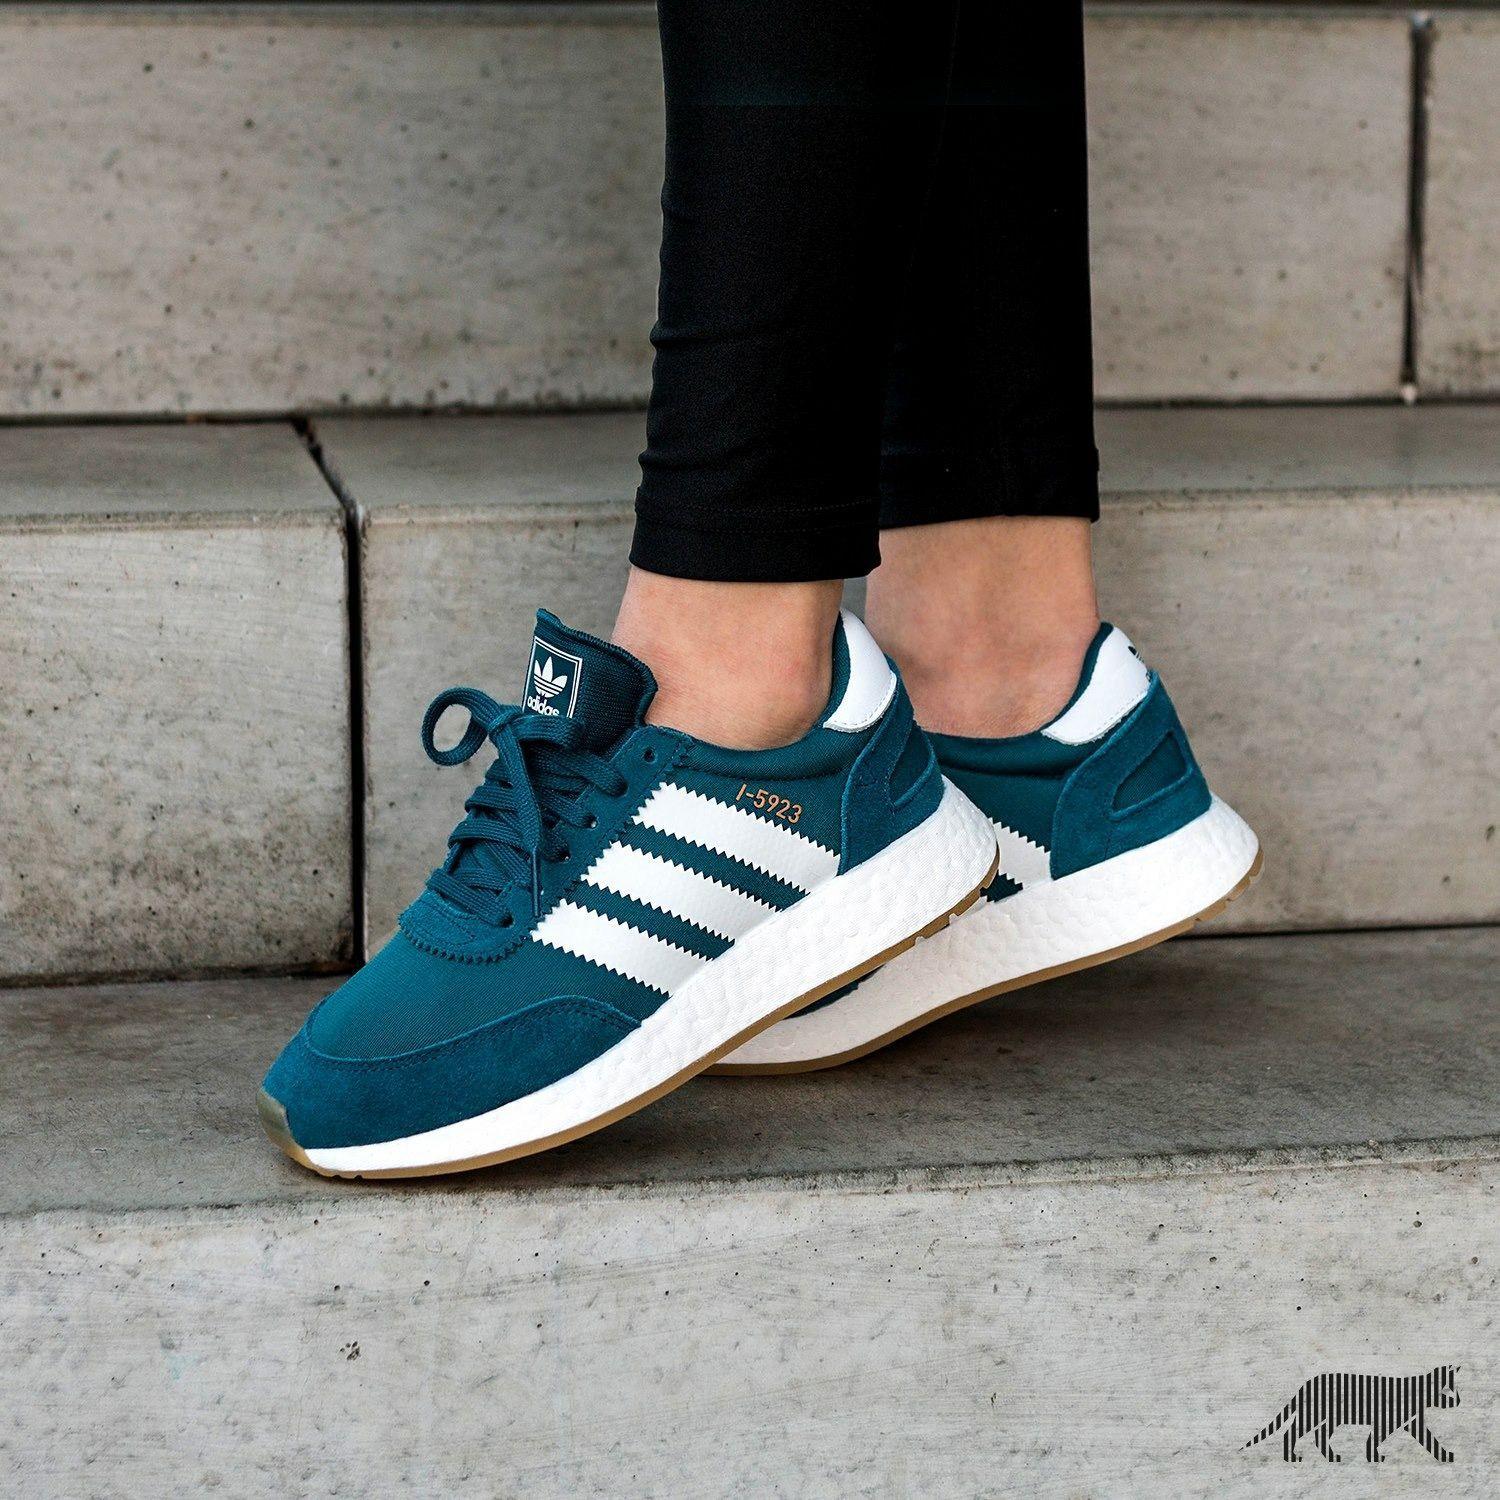 new style 827c3 5e976 adidas Originals I-5923. Find this Pin and more on Minimalist Shoes ...